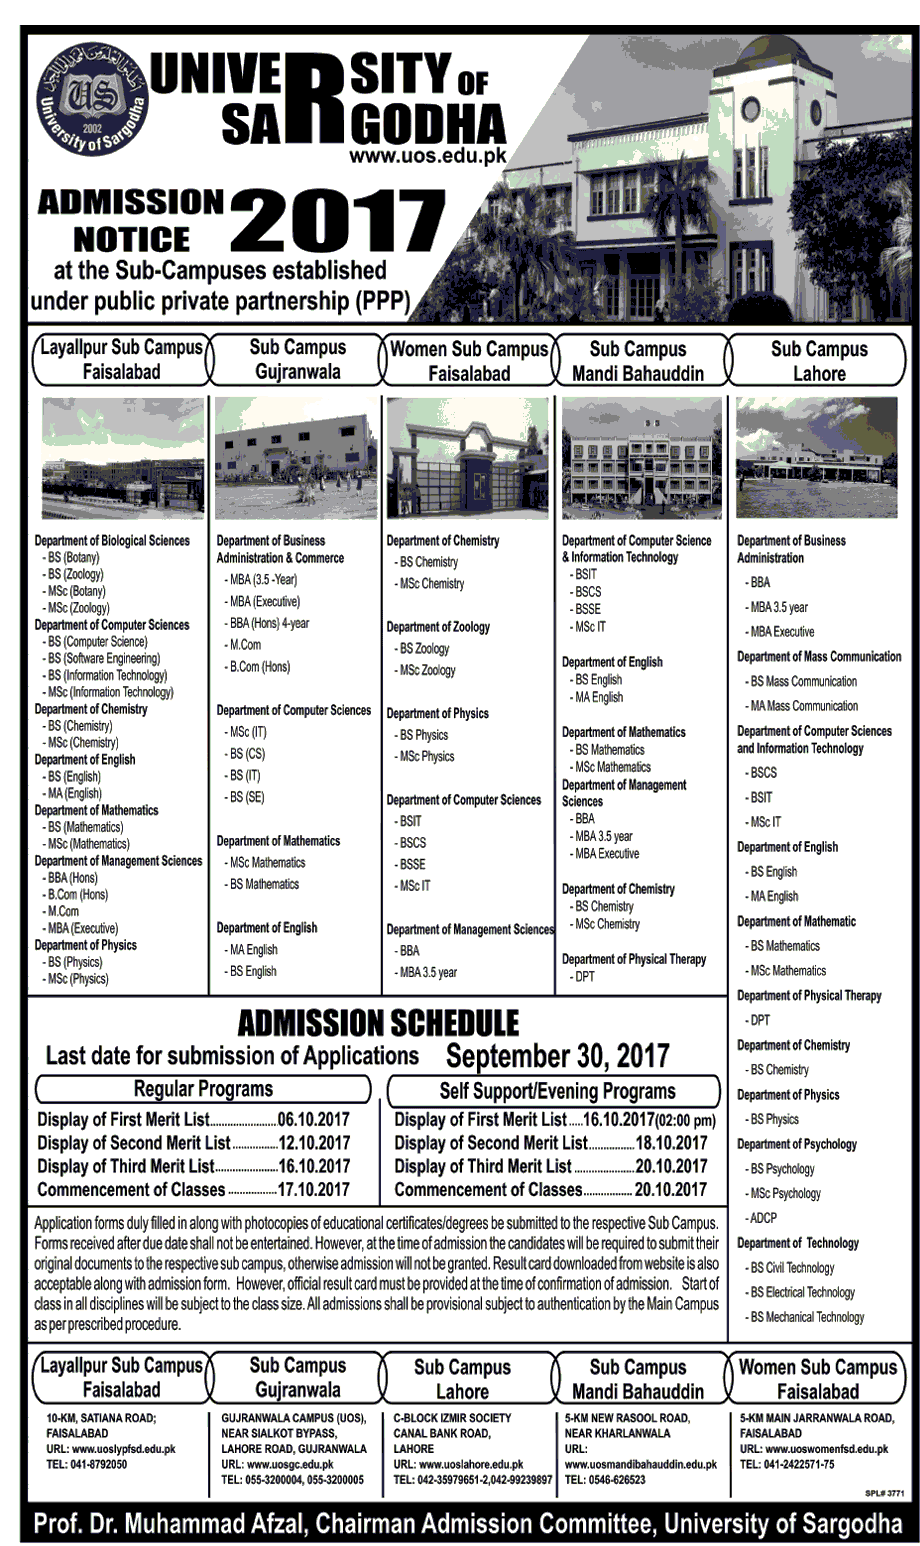 University of Sargodha Admission 2017